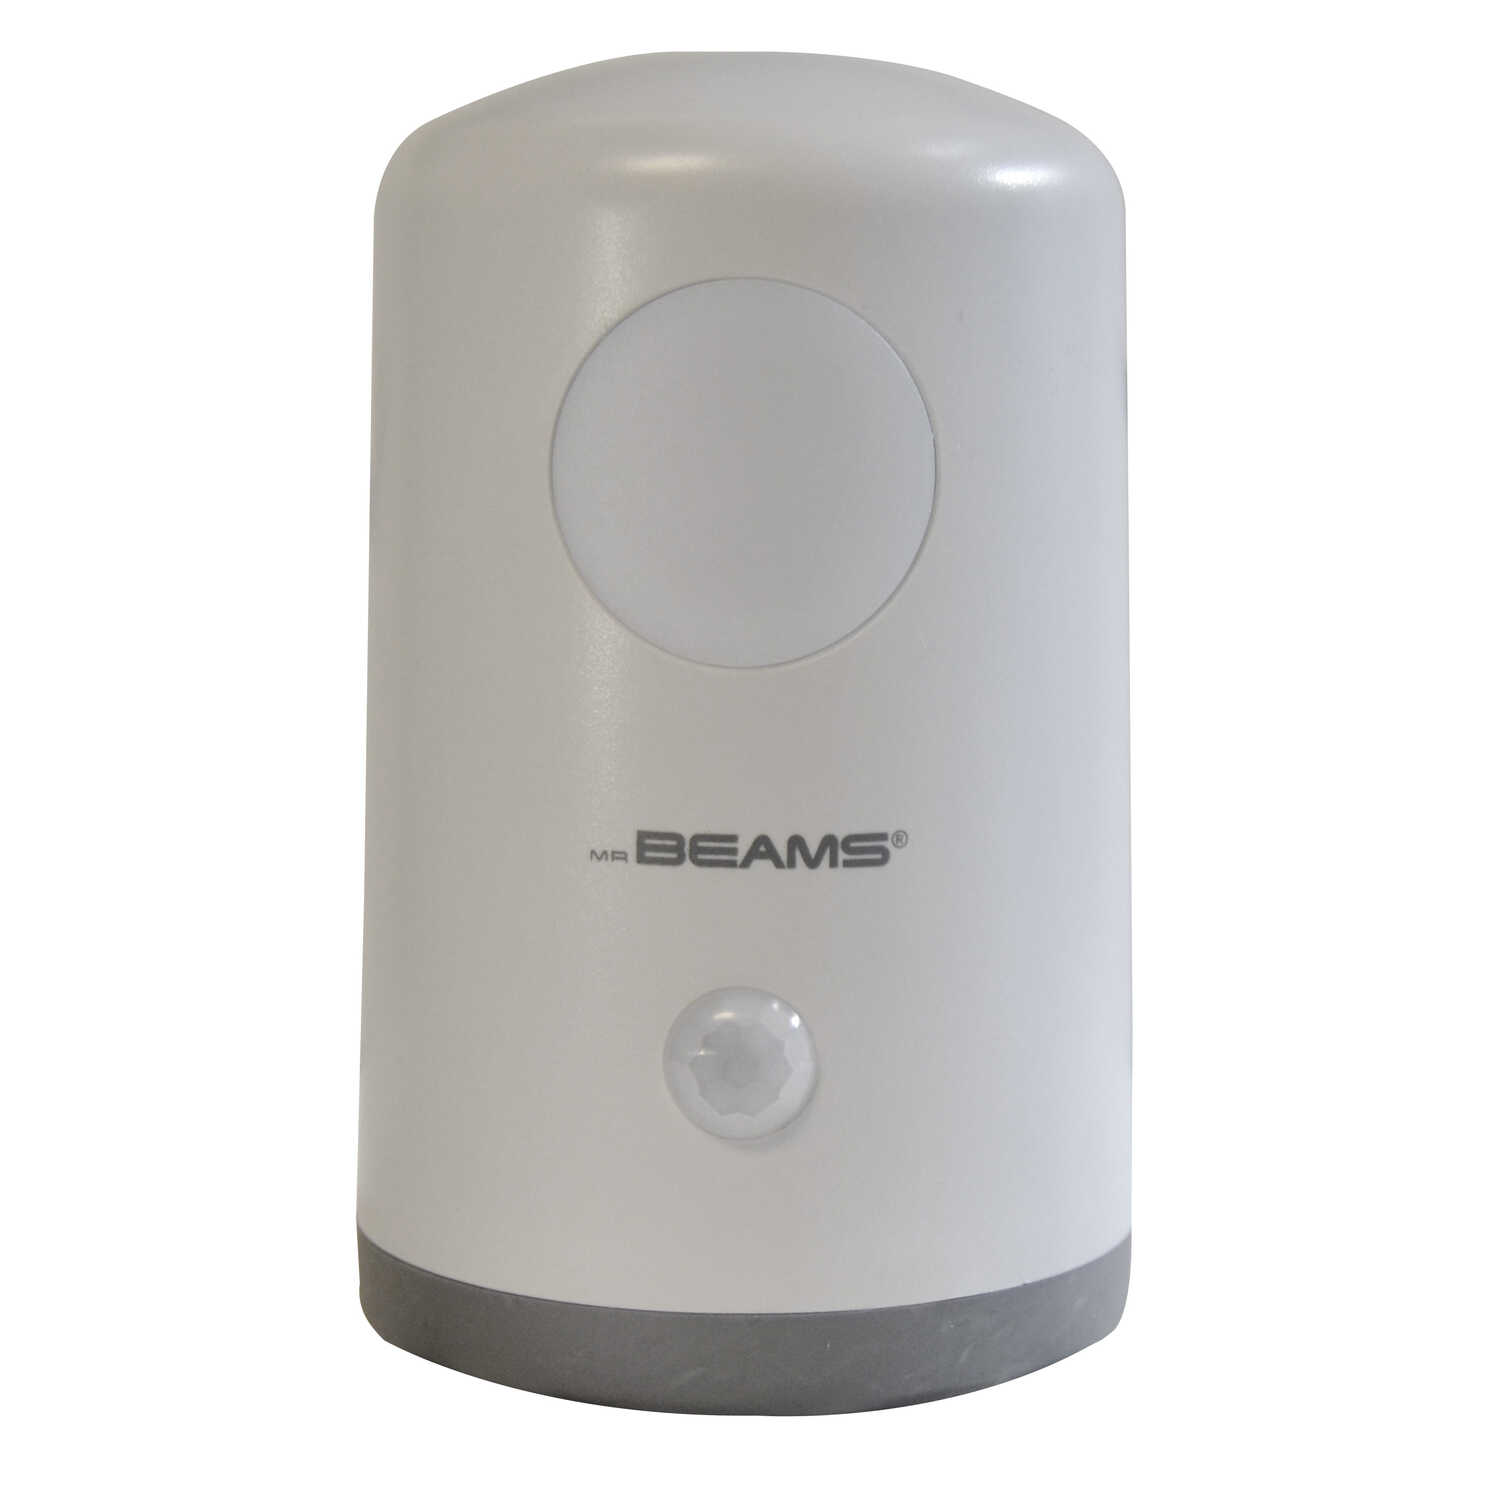 Mr Beams Automatic Battery Powered Led Night Light Ace